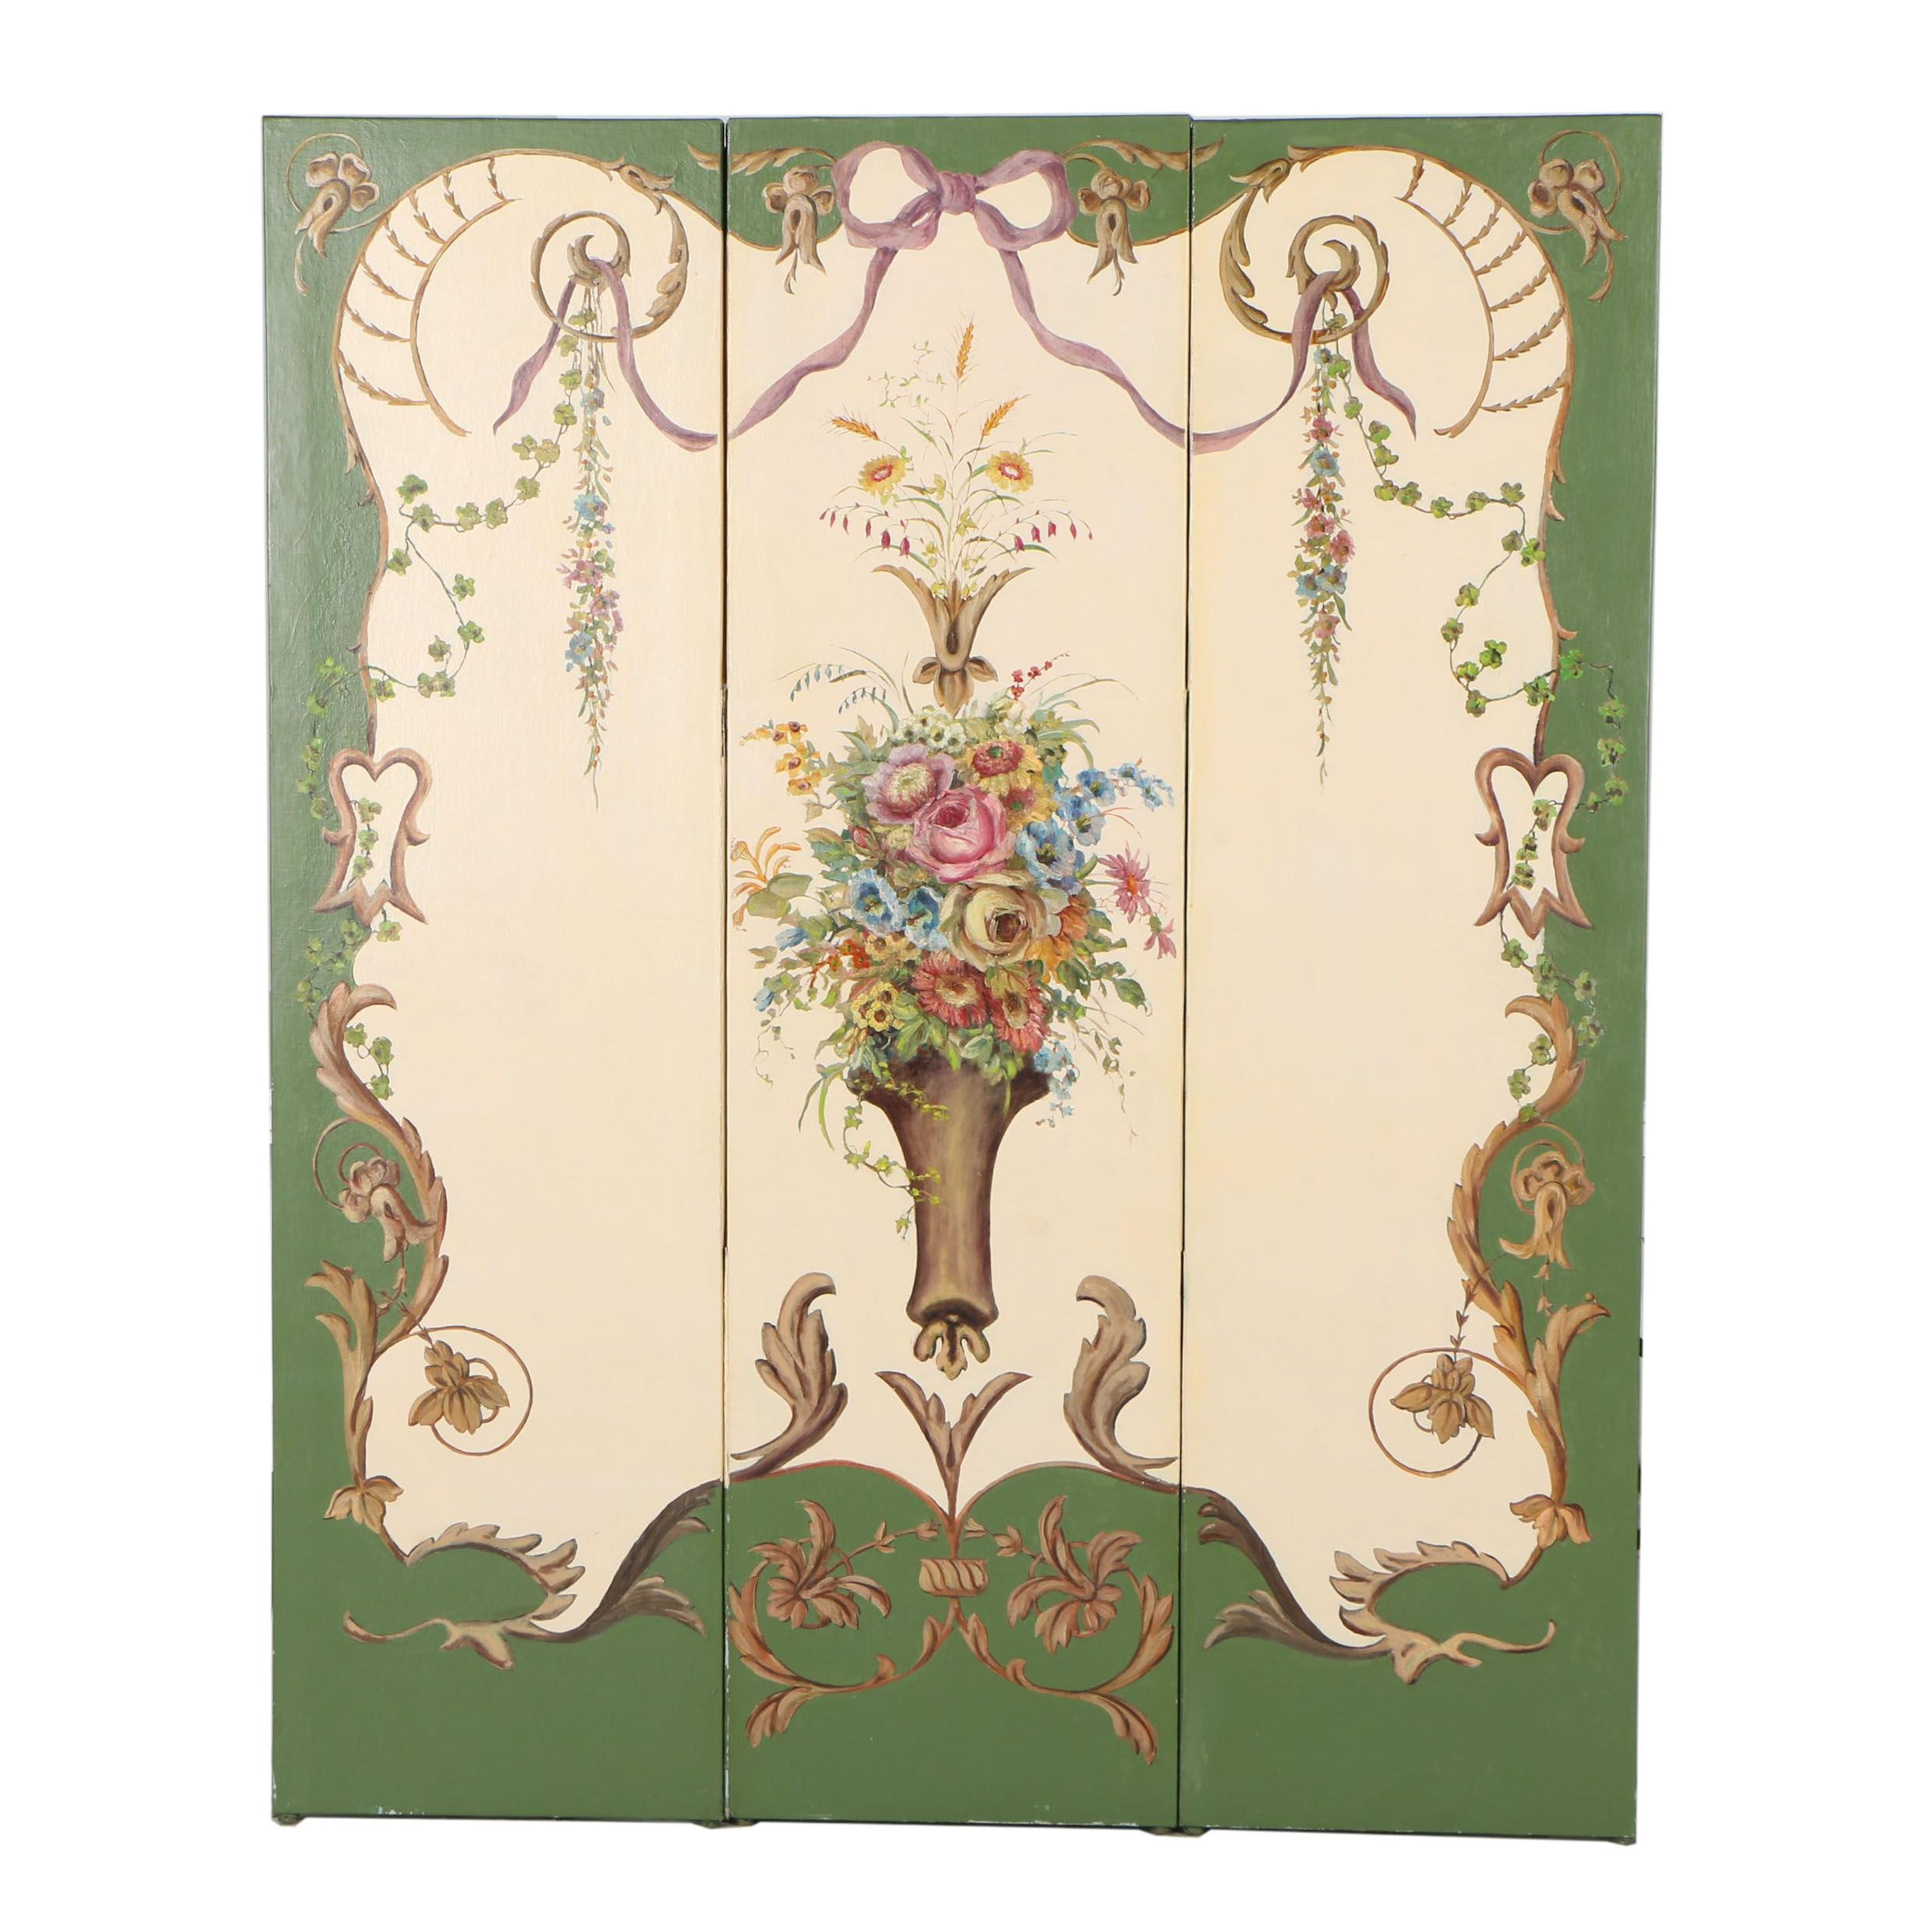 Rococo Style Hand-Painted Canvas Room Divider, 20th Century